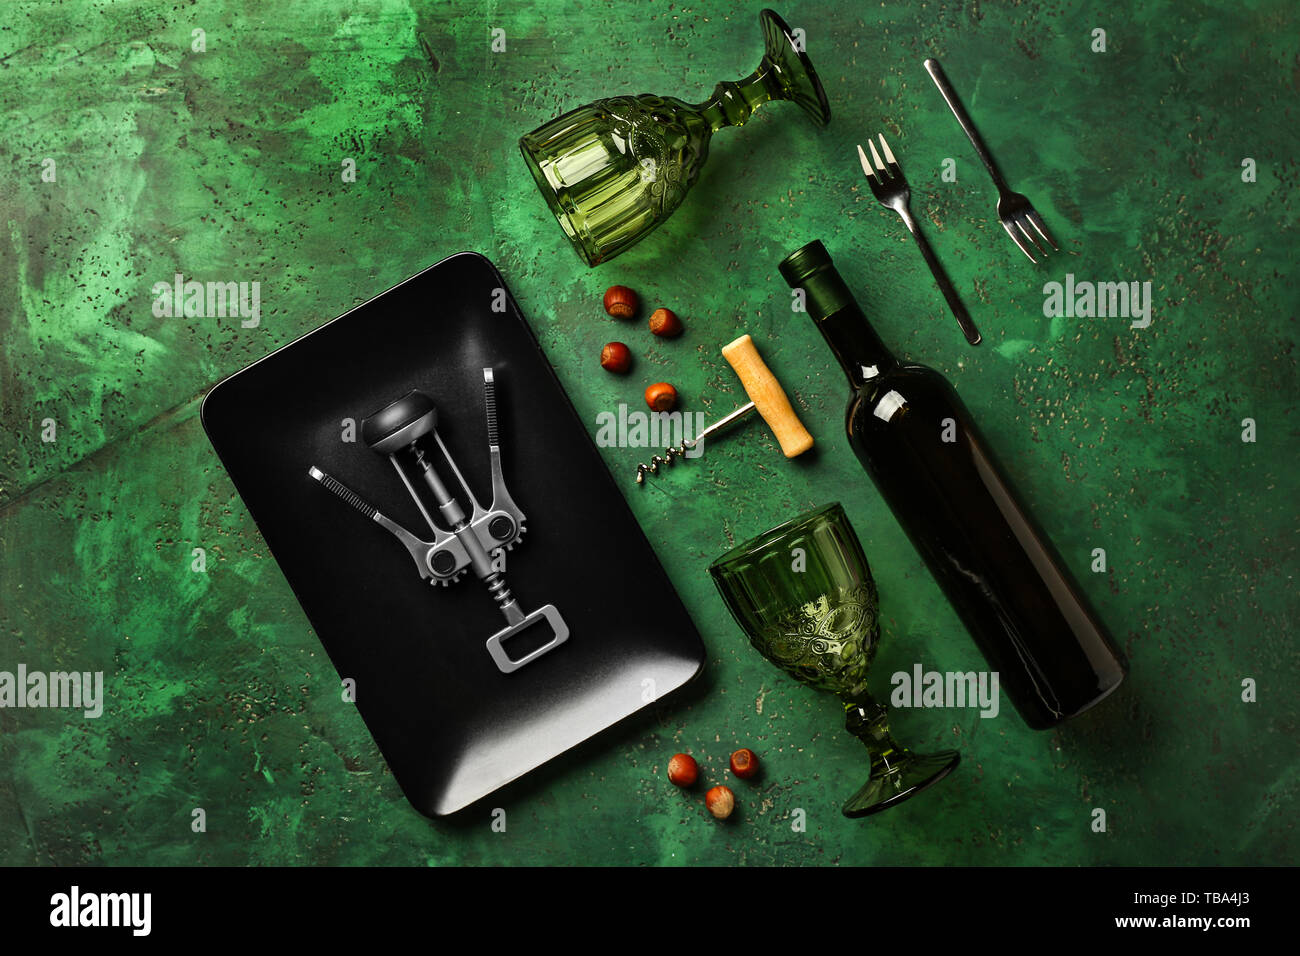 Glasses, bottle of wine, plate and corkscrews on color background - Stock Image